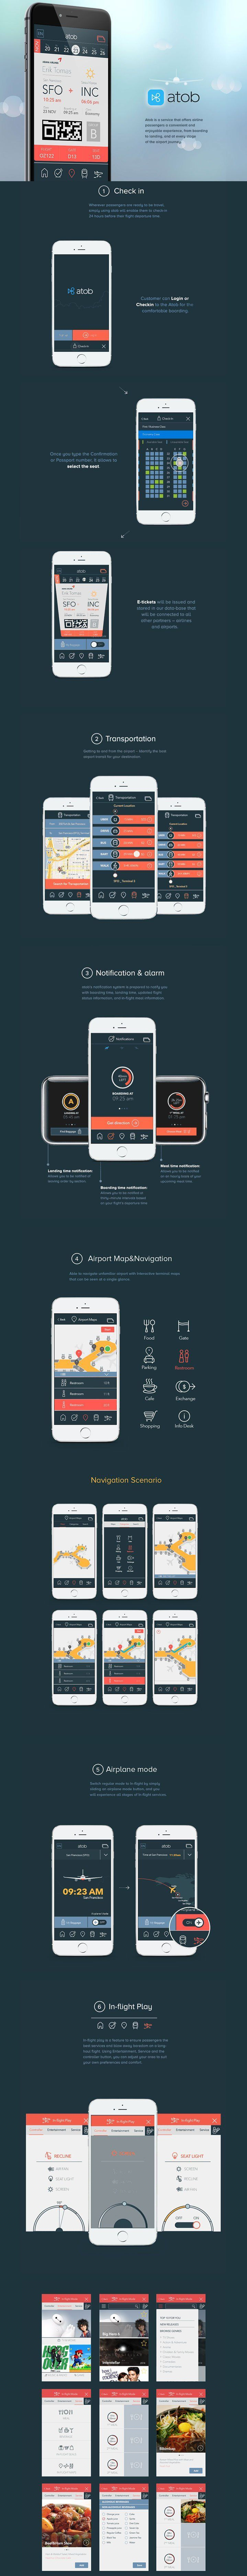 Atob (Airline Service App) plane trip travel booking app ios iphone smartphone